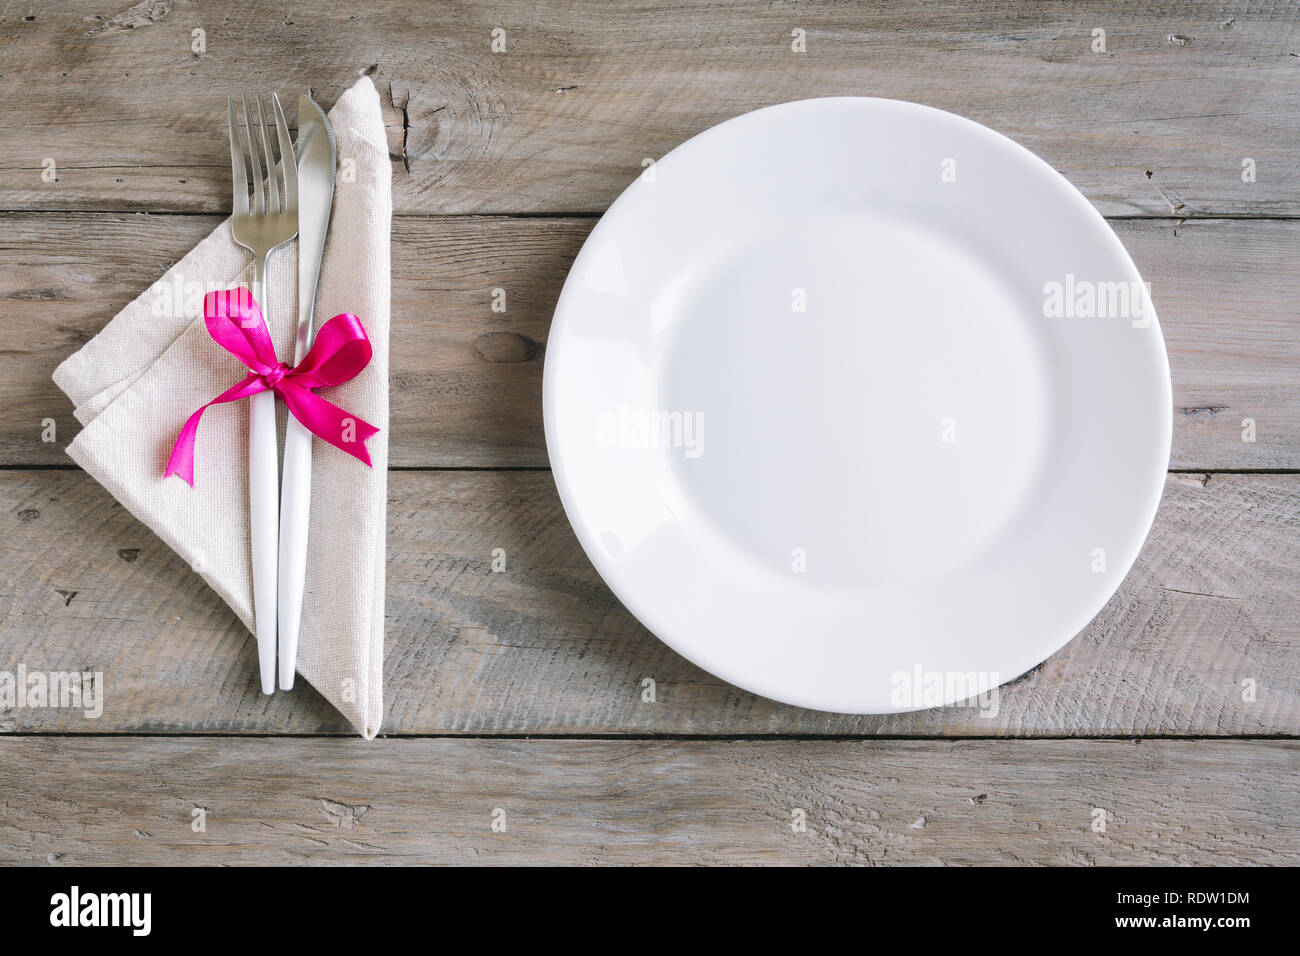 Cutlery Set Pink Ribbon On Stock Photos Cutlery Set Pink Ribbon On